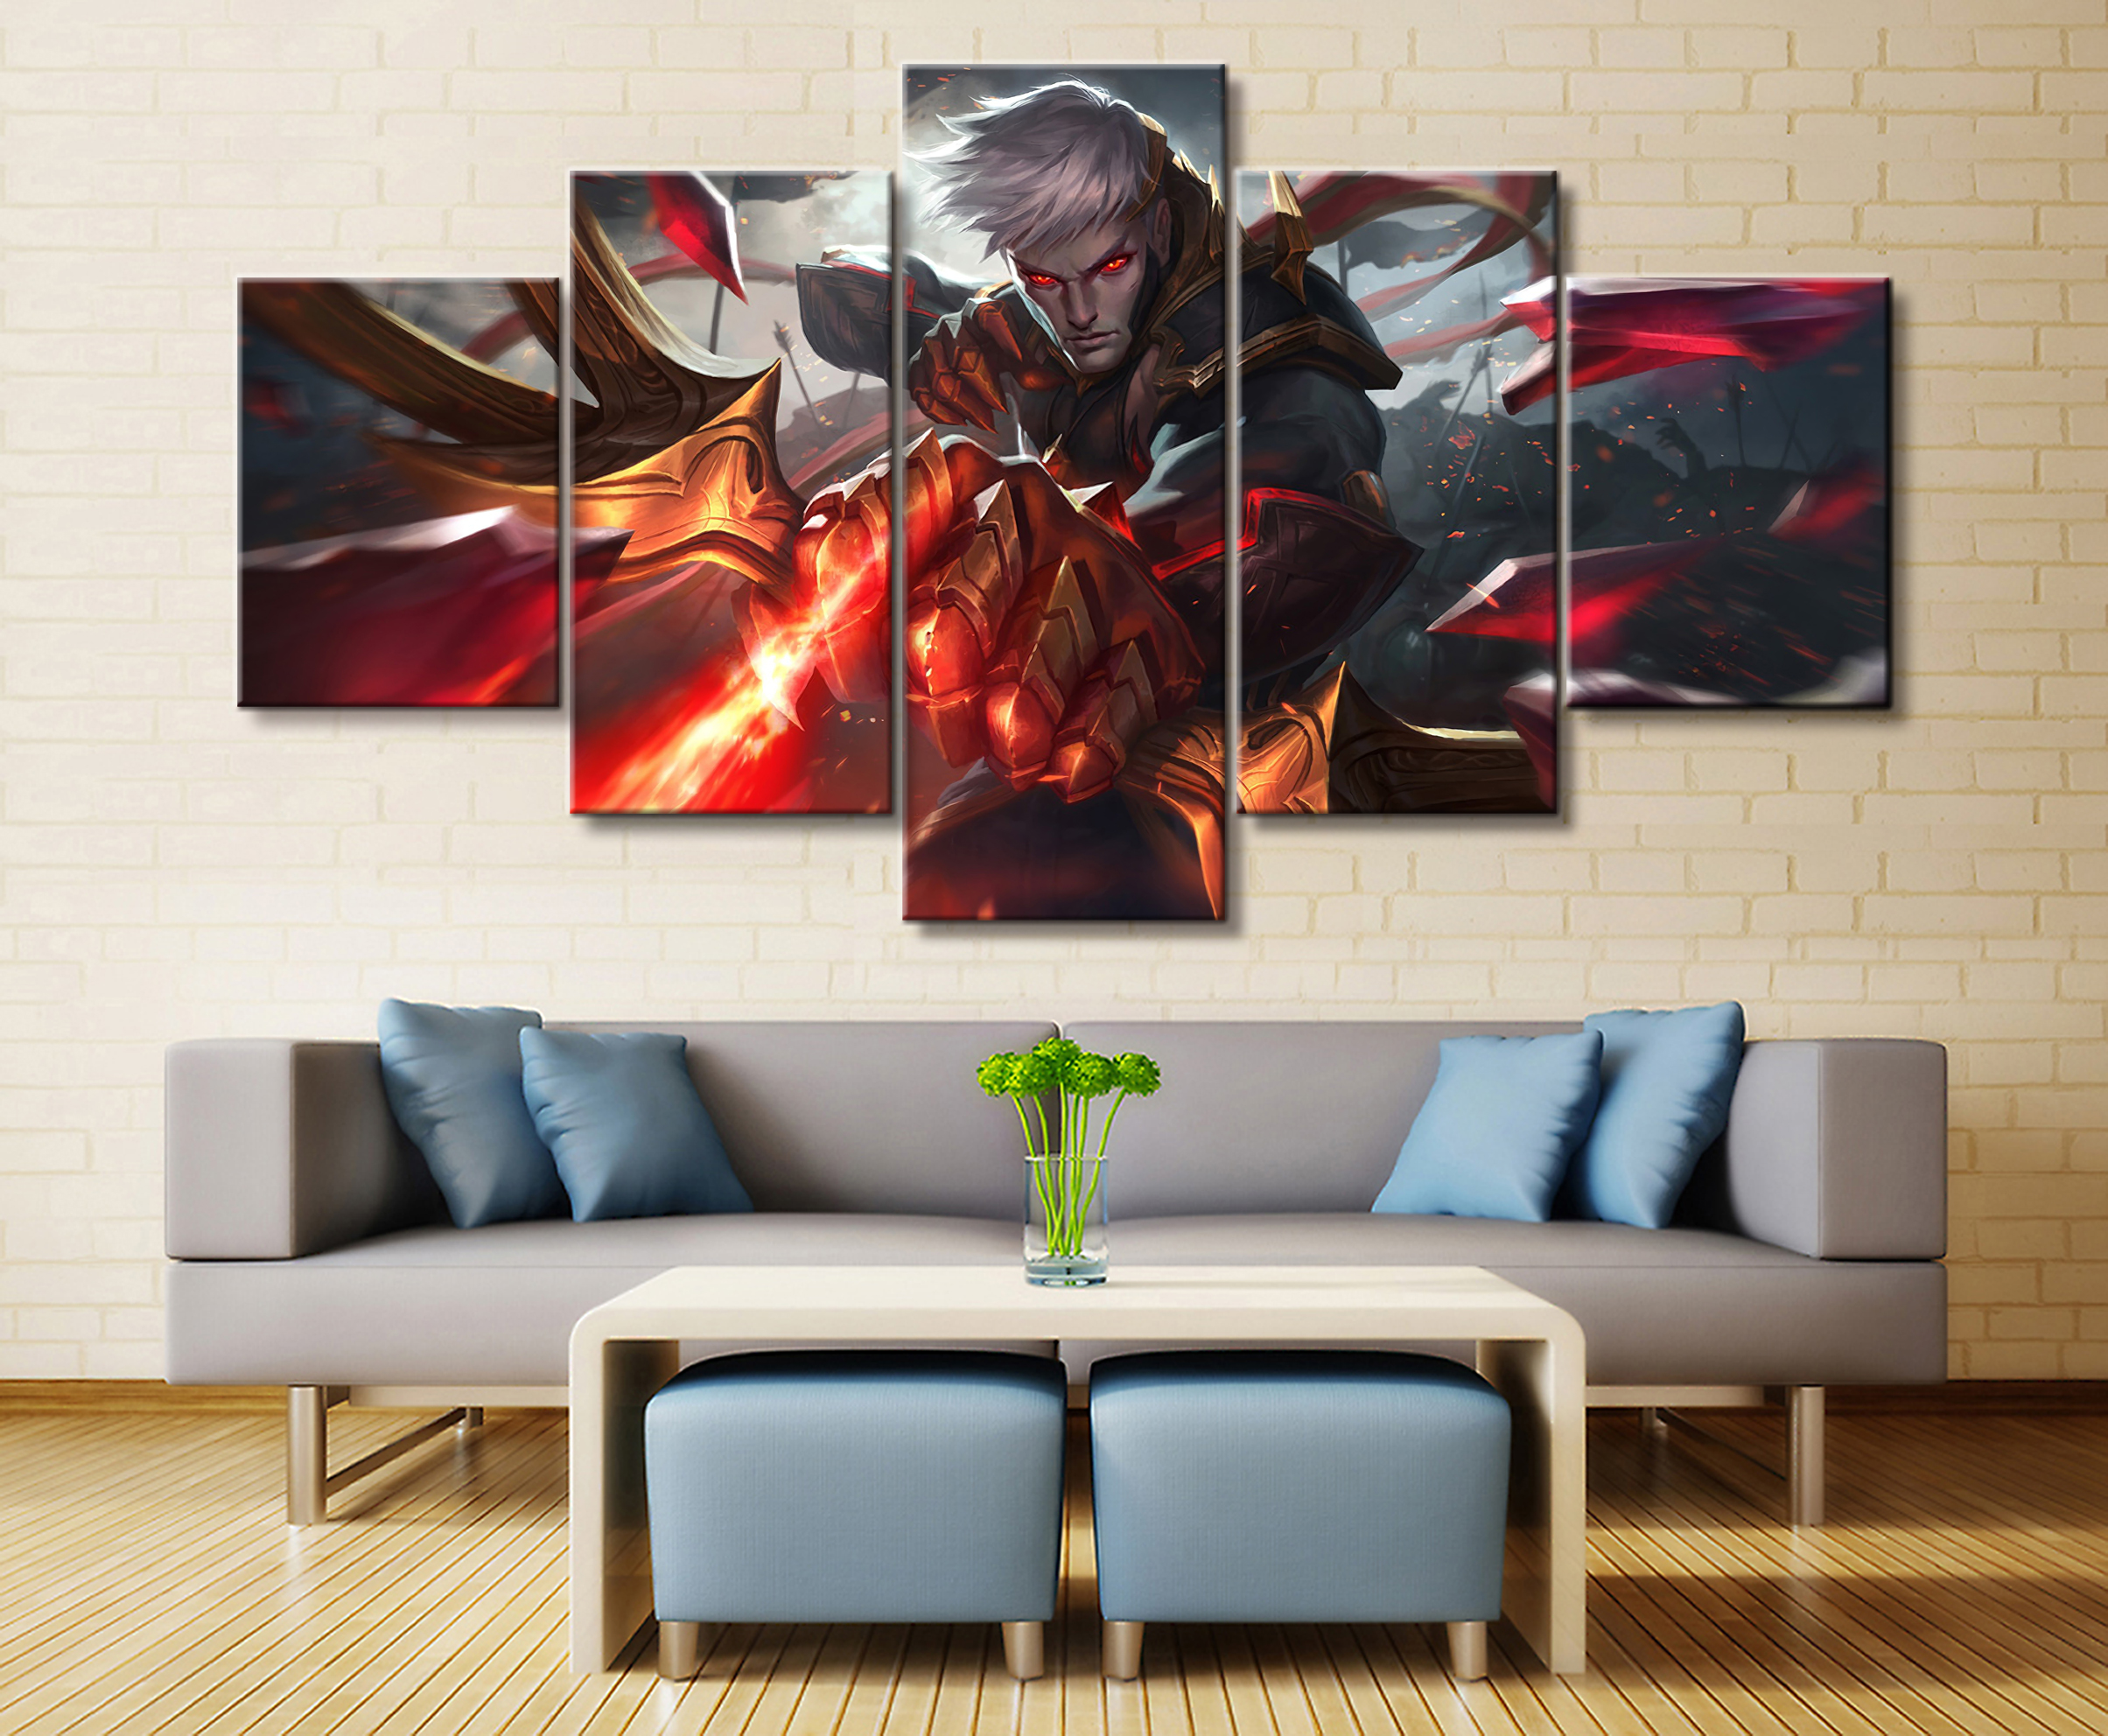 Home Decor Modular Picture Canvas Painting 3 Piece My Hero Academia Animation Poster Wall For Living Room Modern